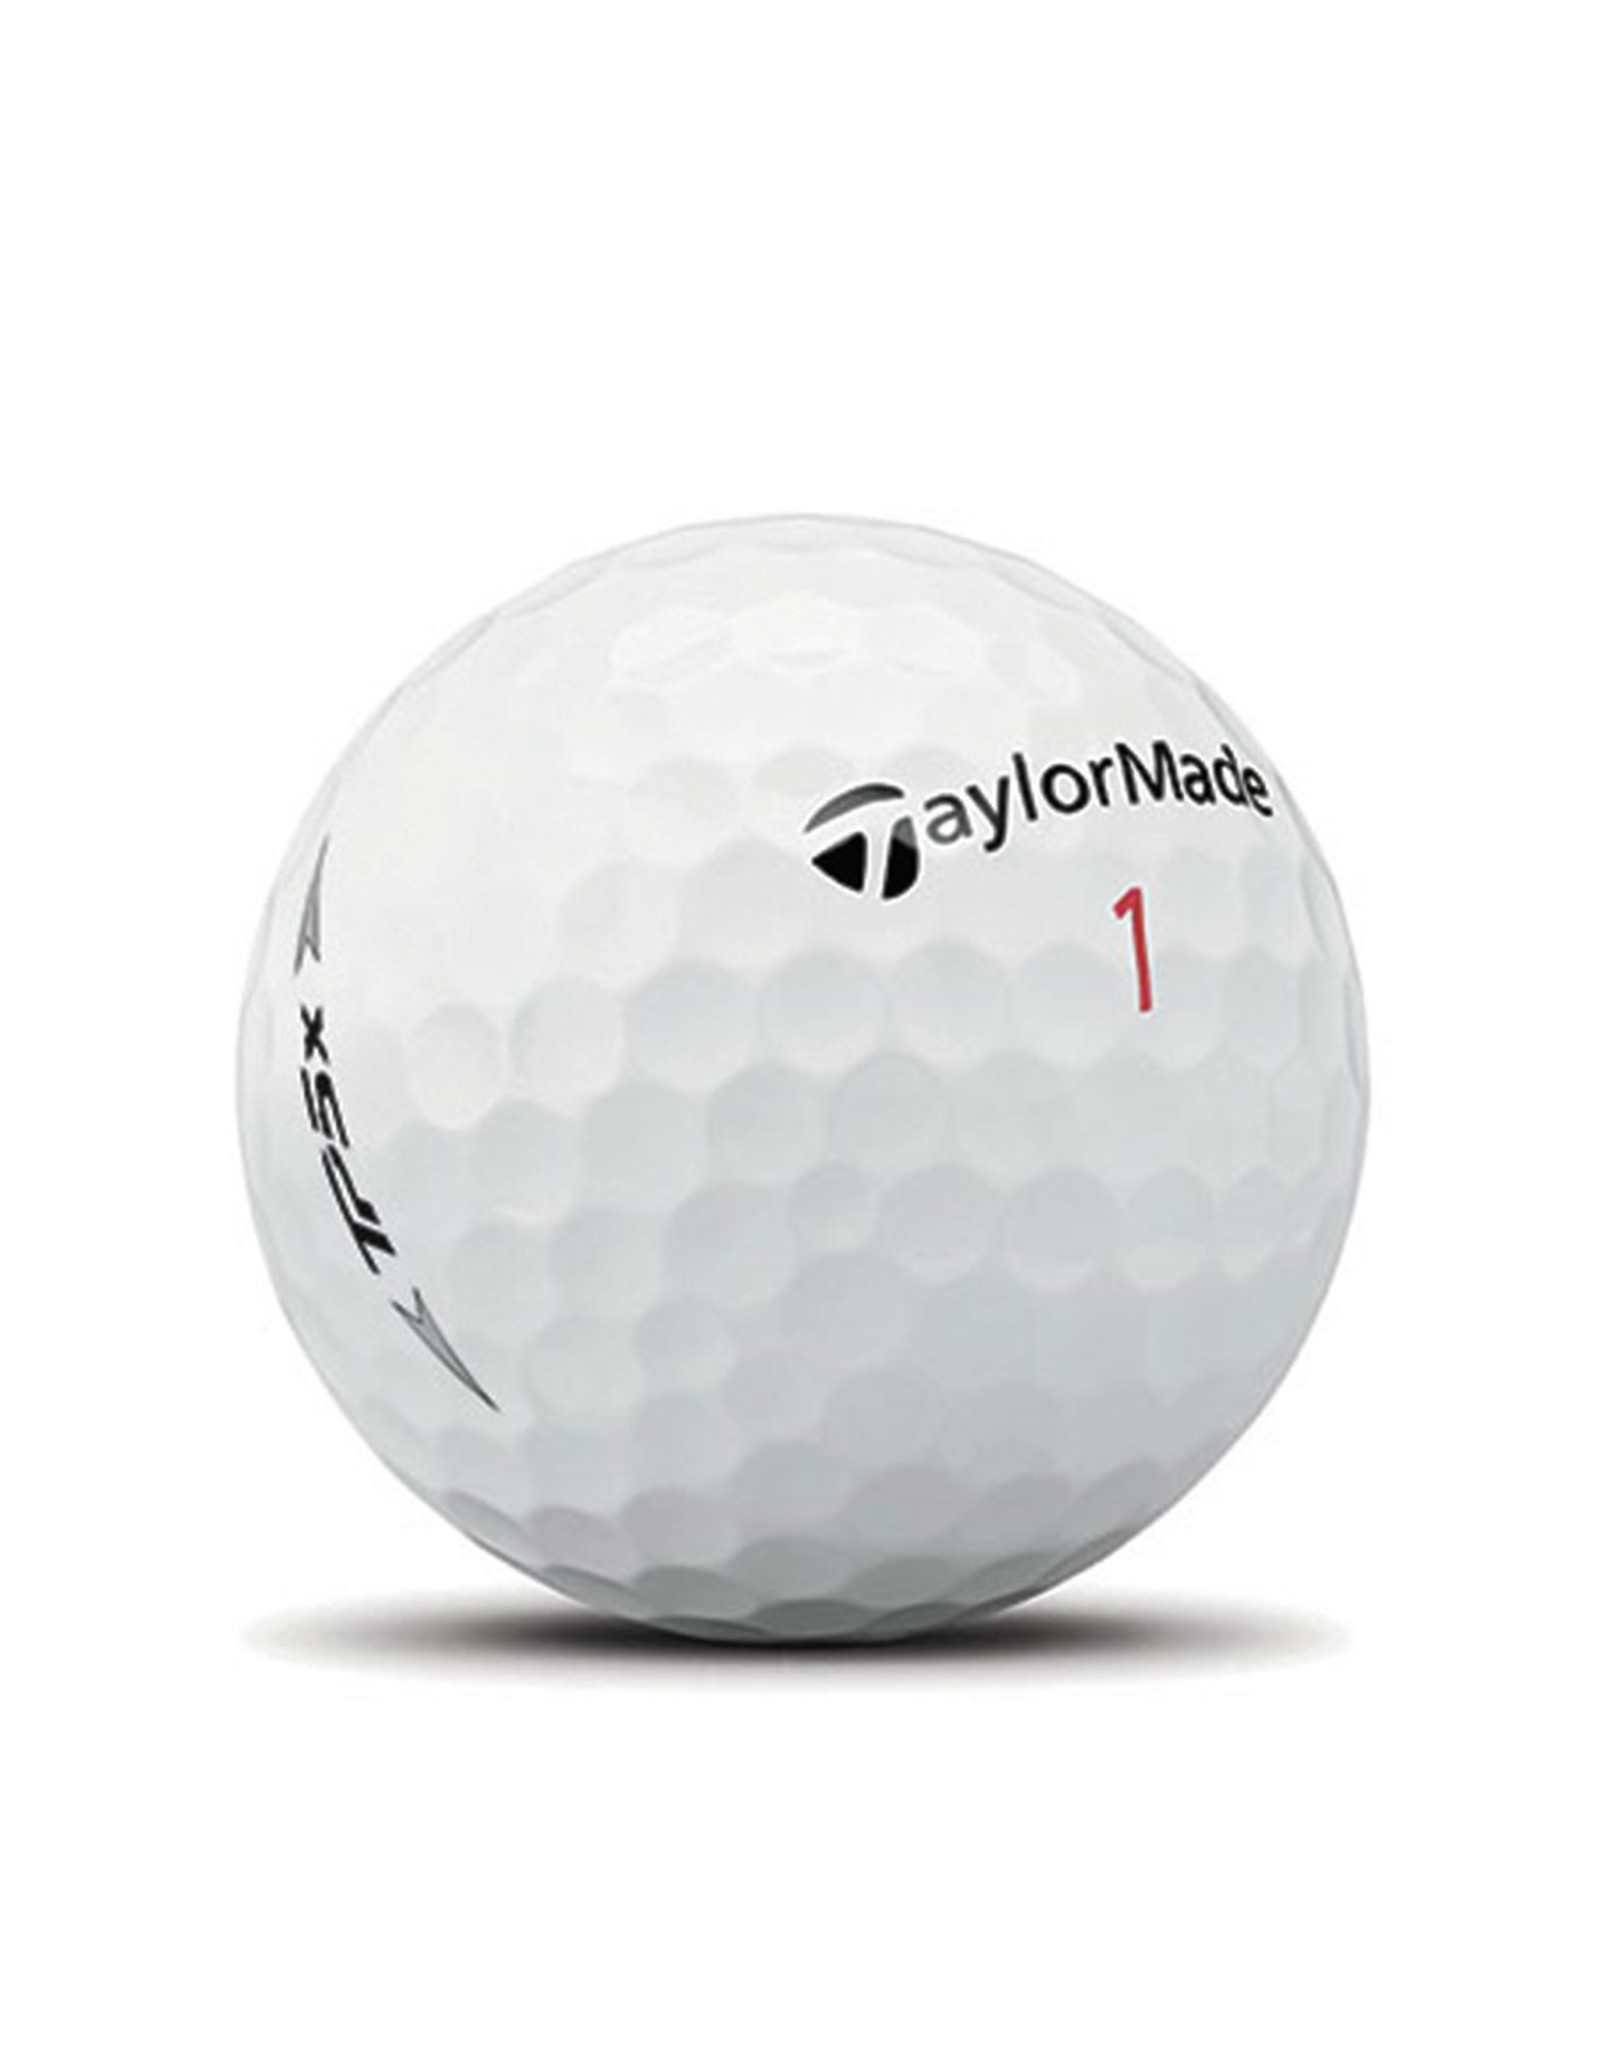 TaylorMade Taylormade TP5X Dozen